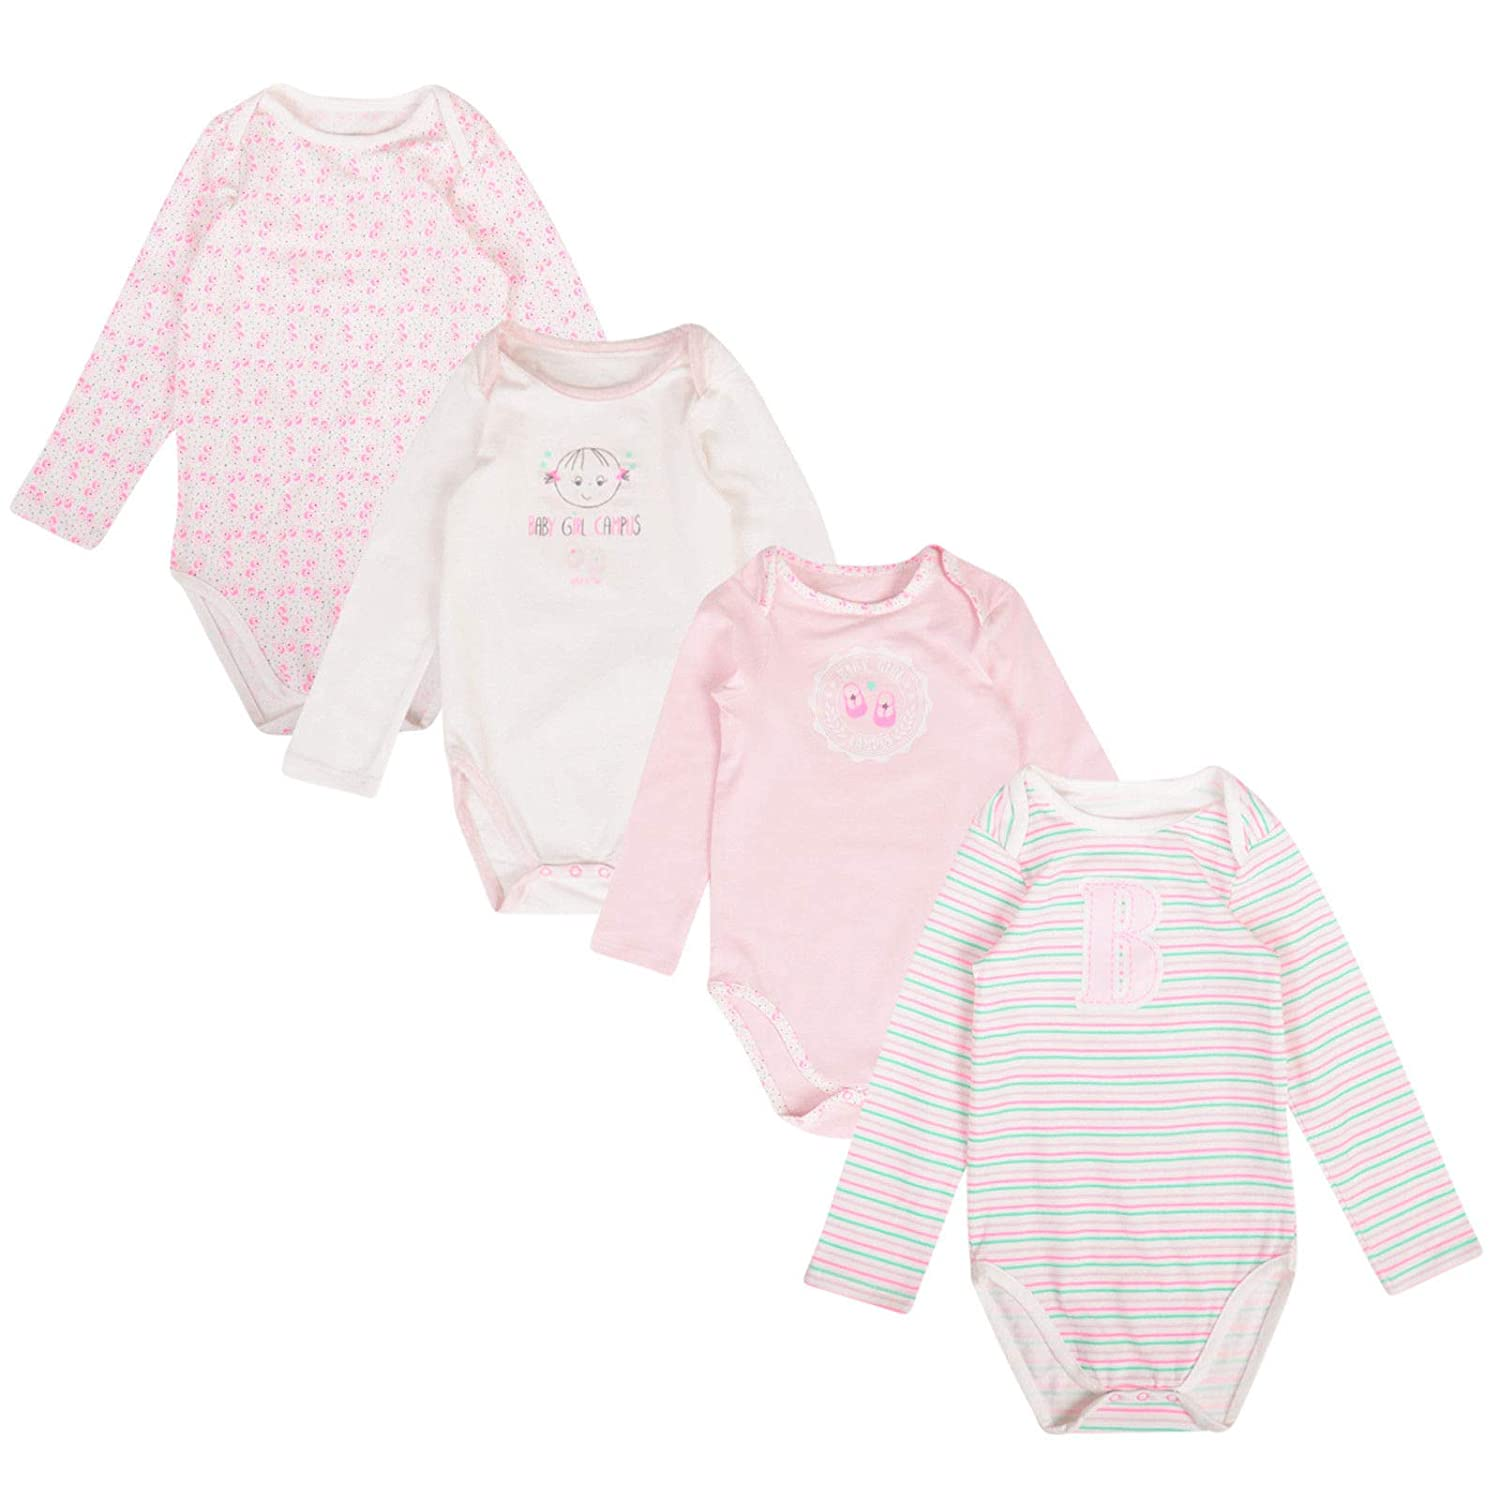 Paradise Baby Girls 3 Pack Bodysuits Long Sleeve EX Store Cotton Vests 0-36M